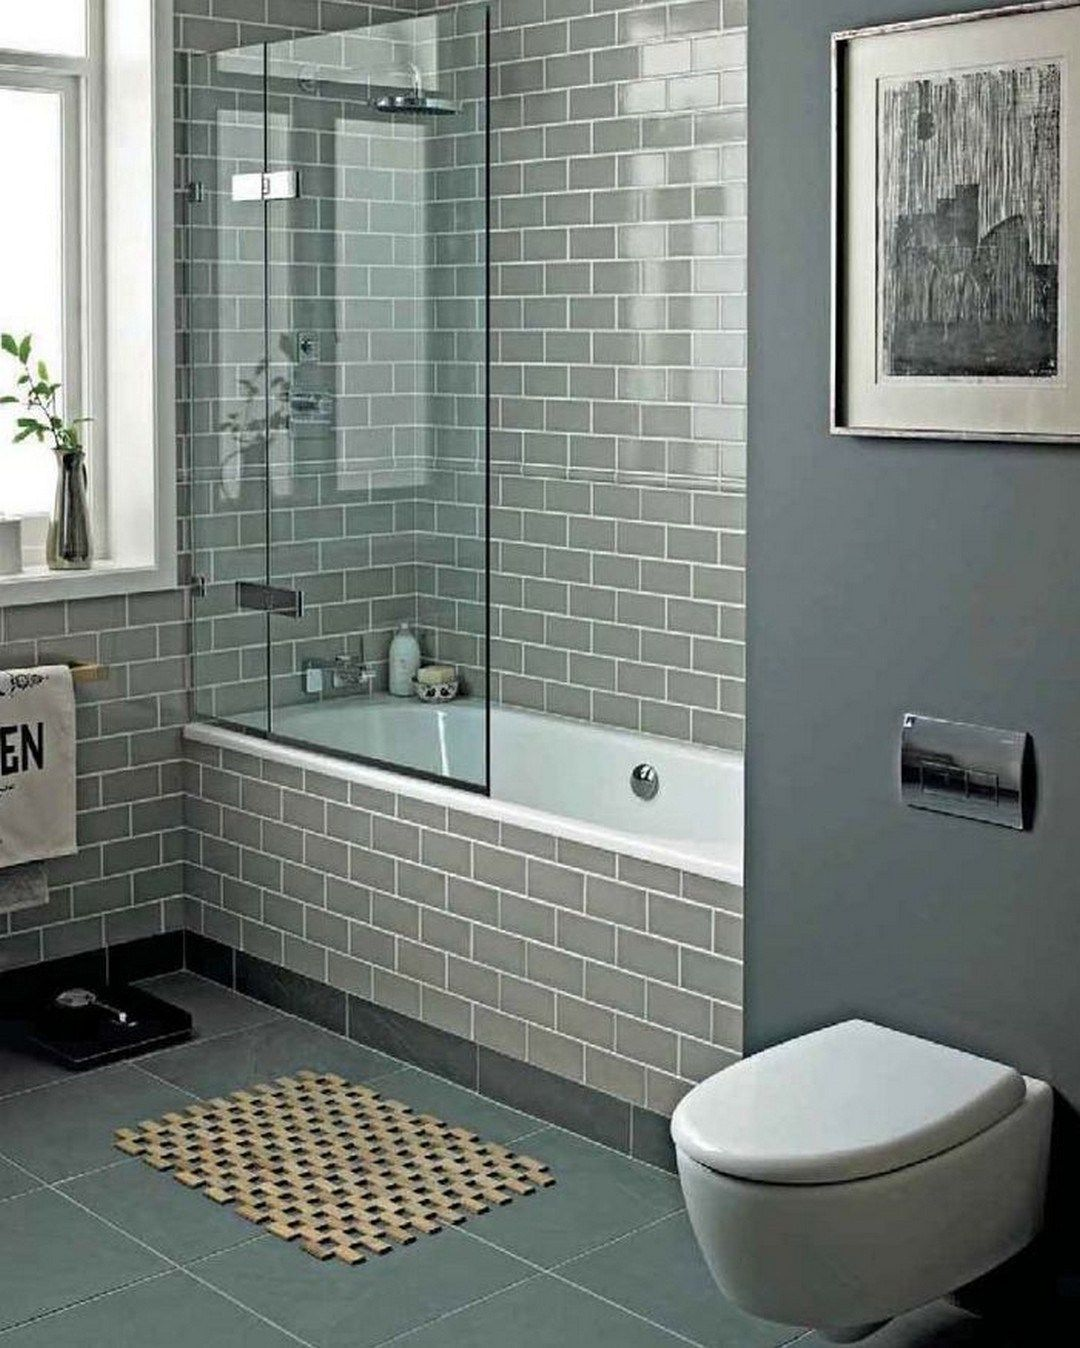 Whether It Is Sy Shower Stall Powder Room Or A Small Bathroom Not So Functional Washroom Definitely Can Cramp Your Style